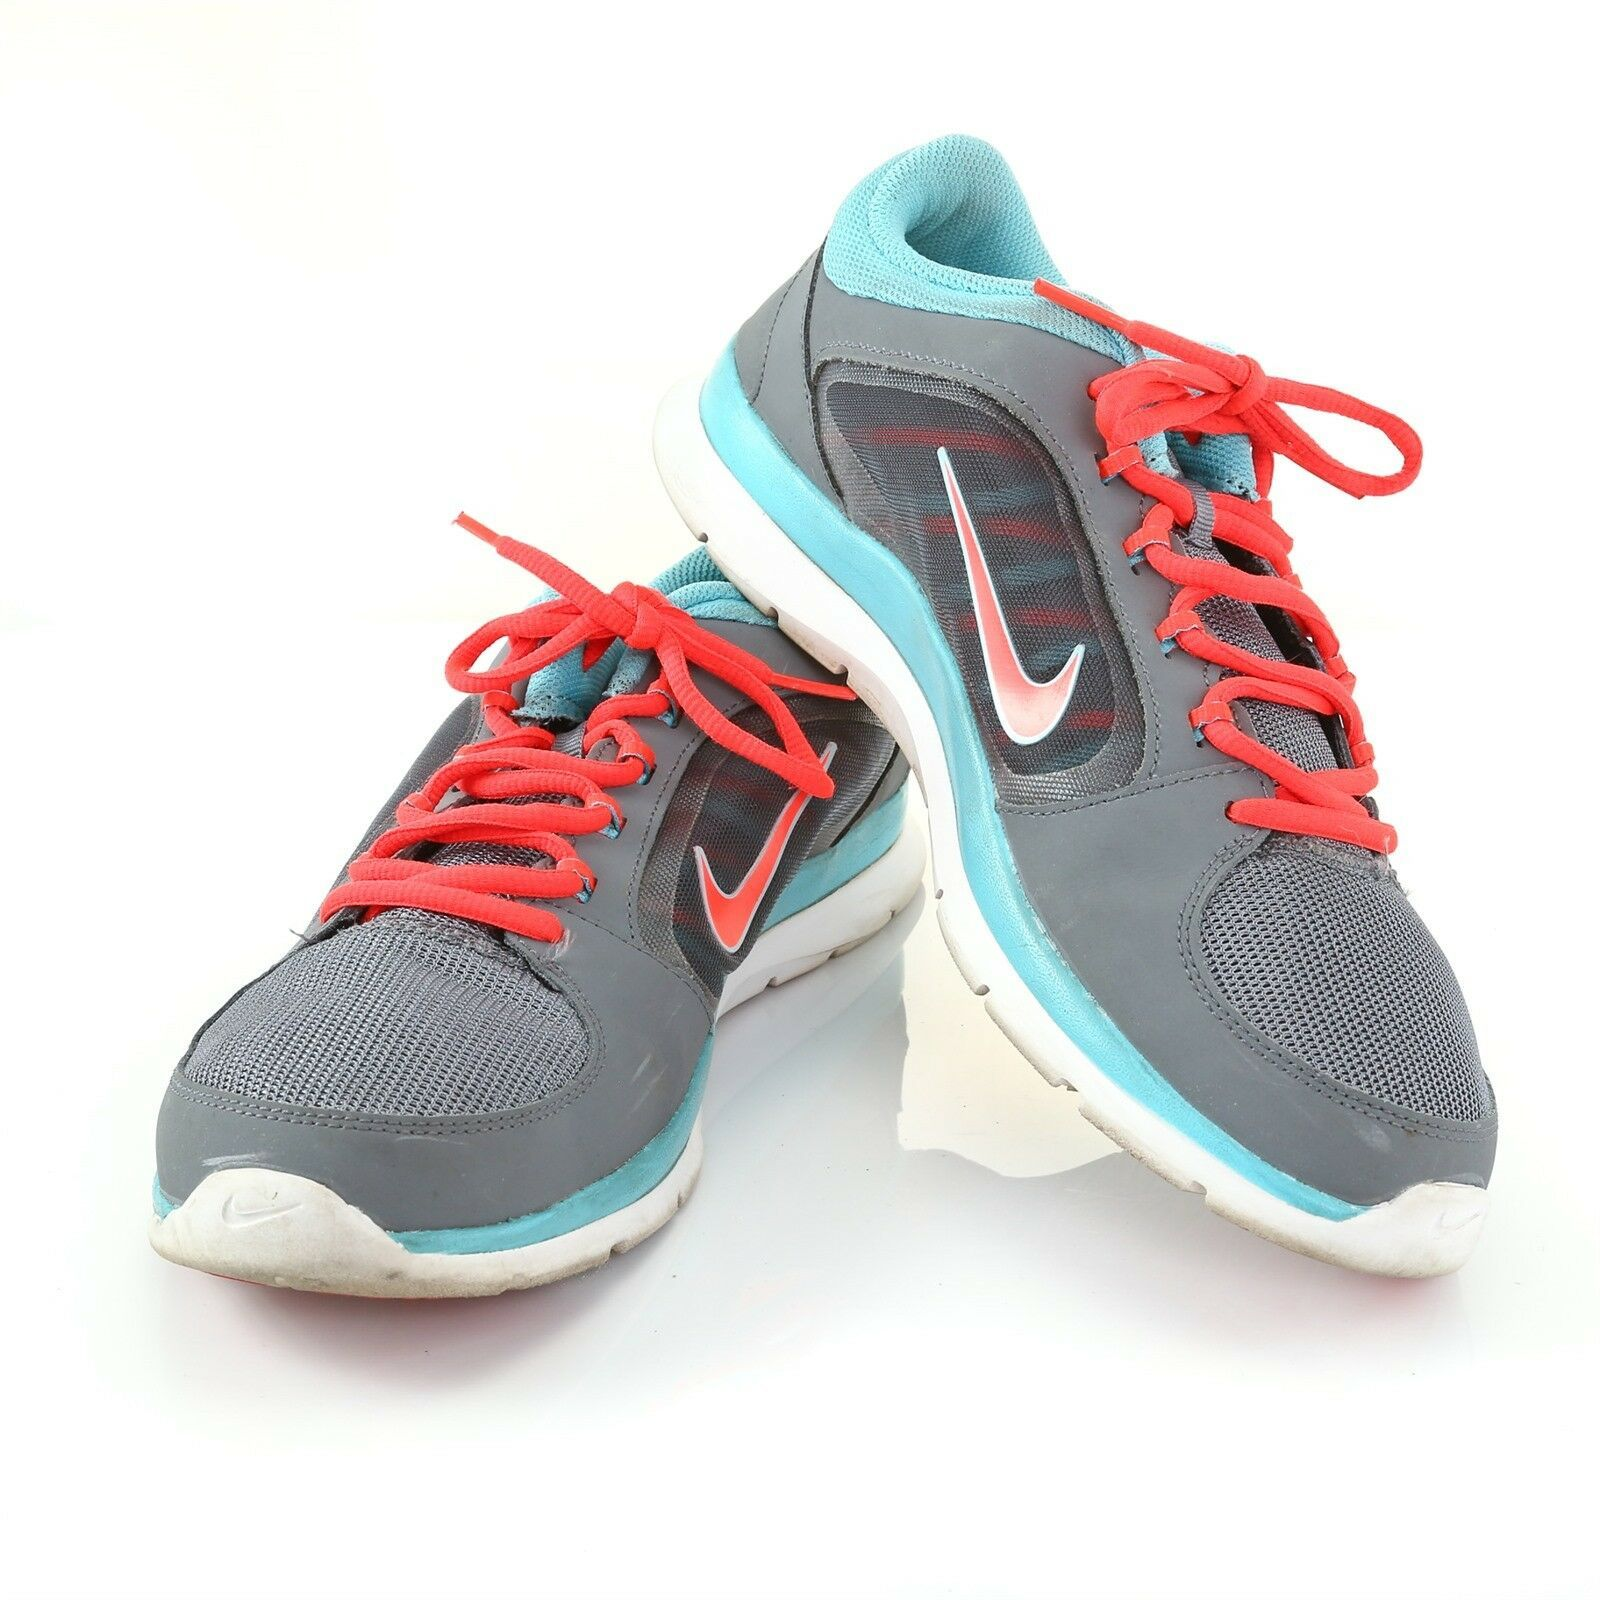 3d4c73a5c Nike Cross Training Athletic Running Shoes and 50 similar items. 57